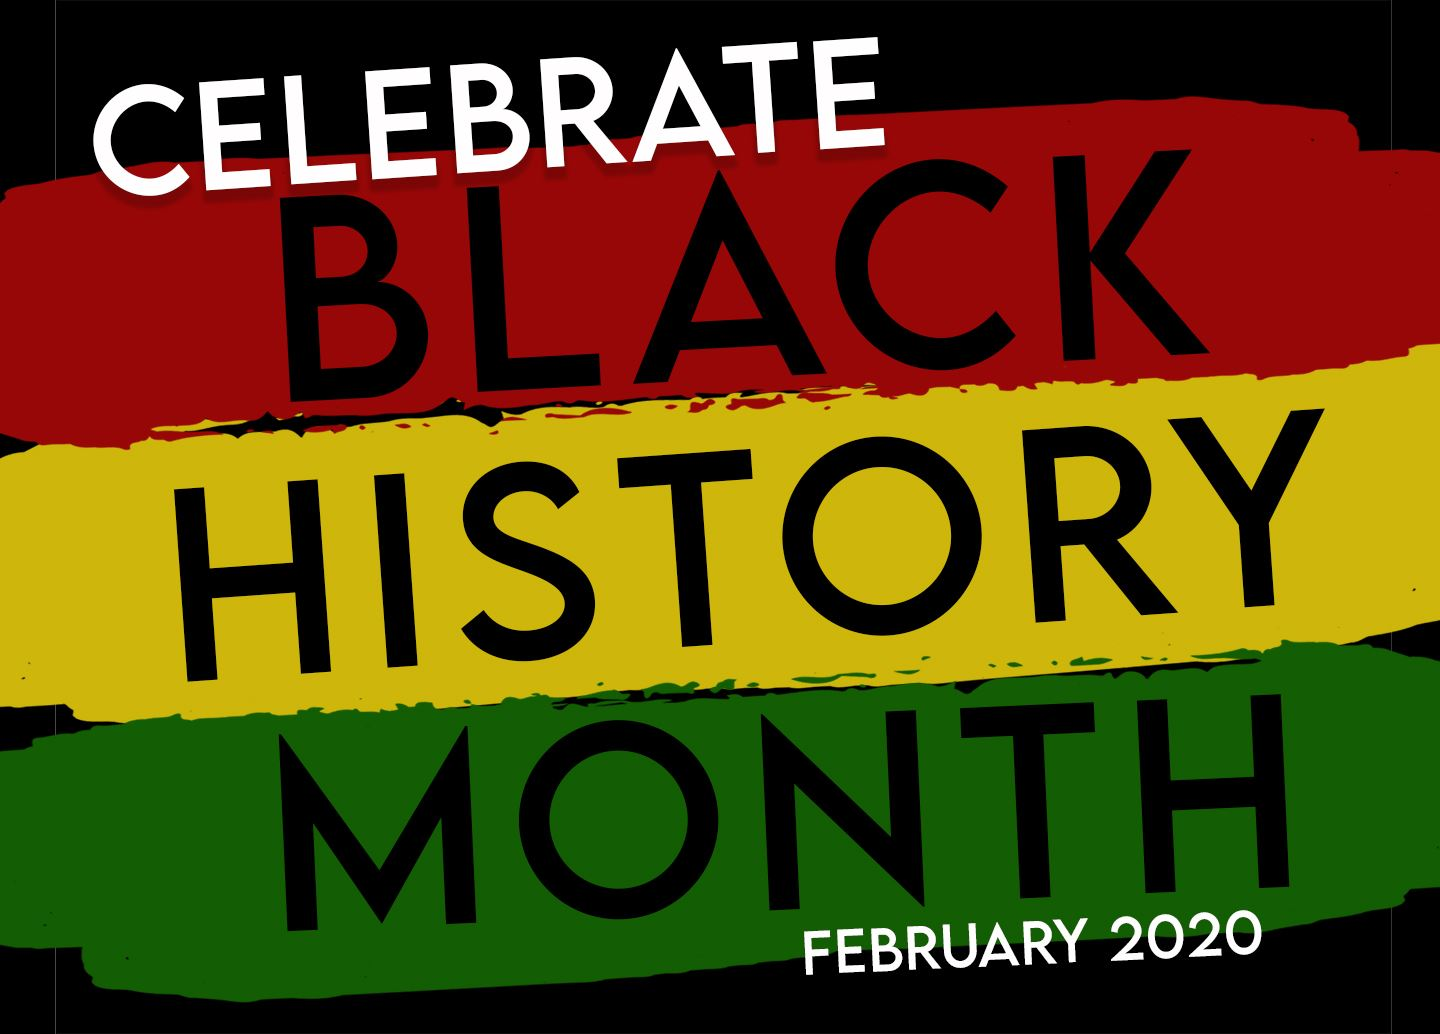 Celebrate Black History Month-February 2020